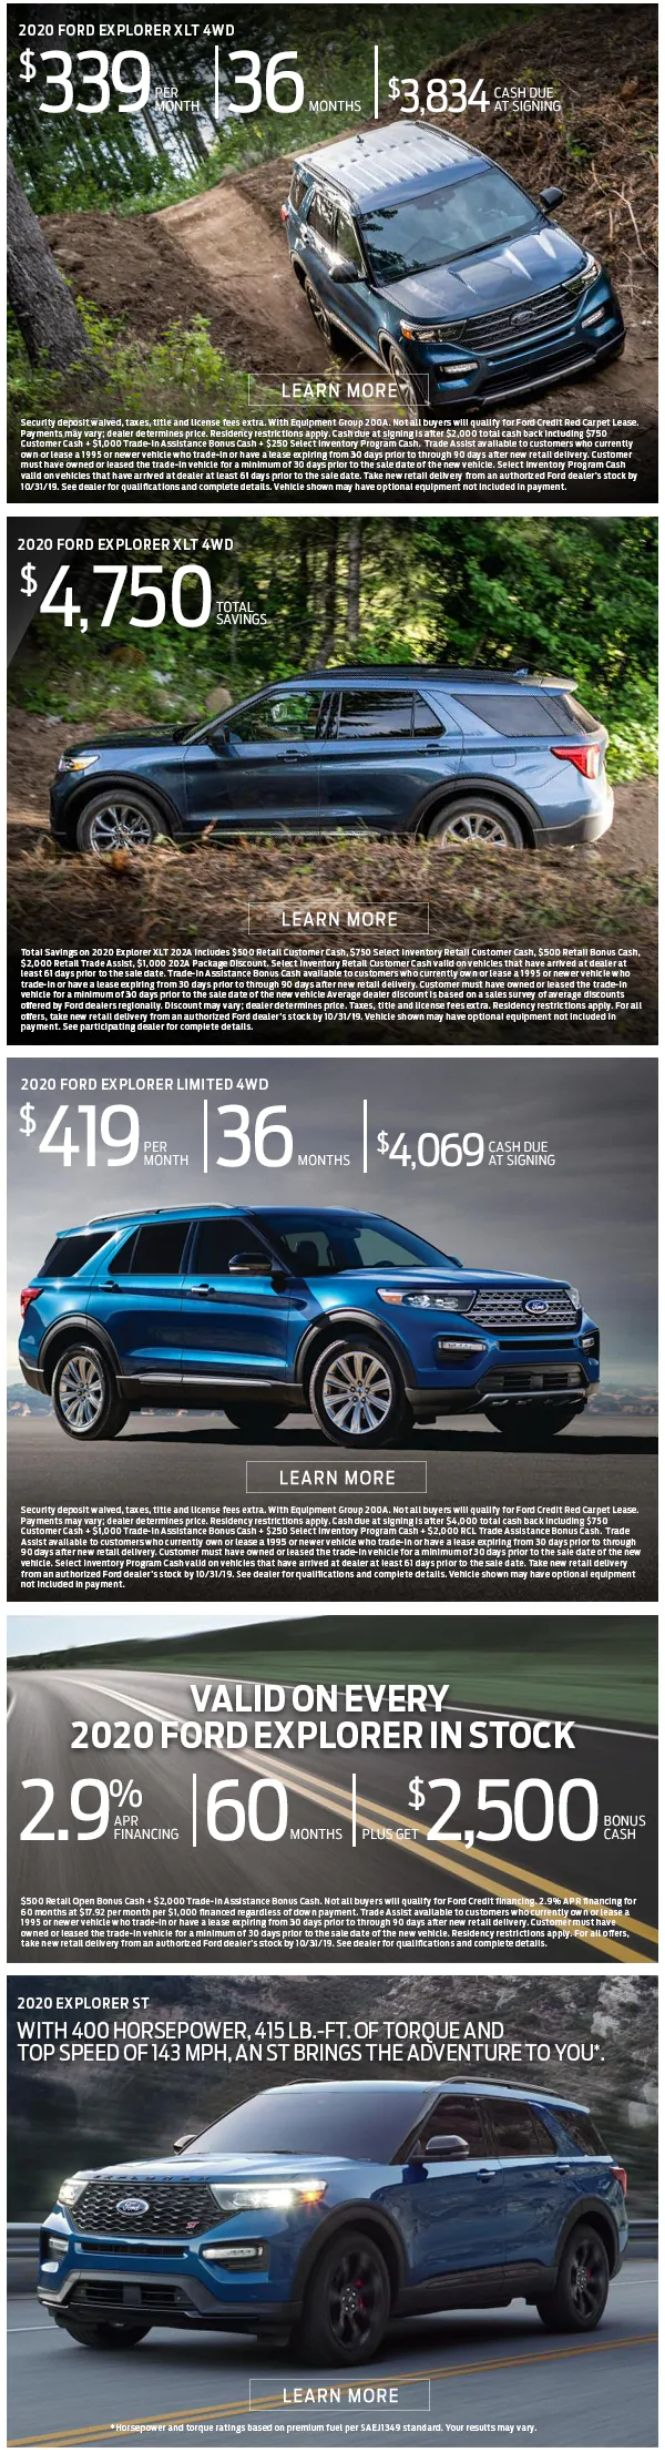 2020 Ford Explorer Offers